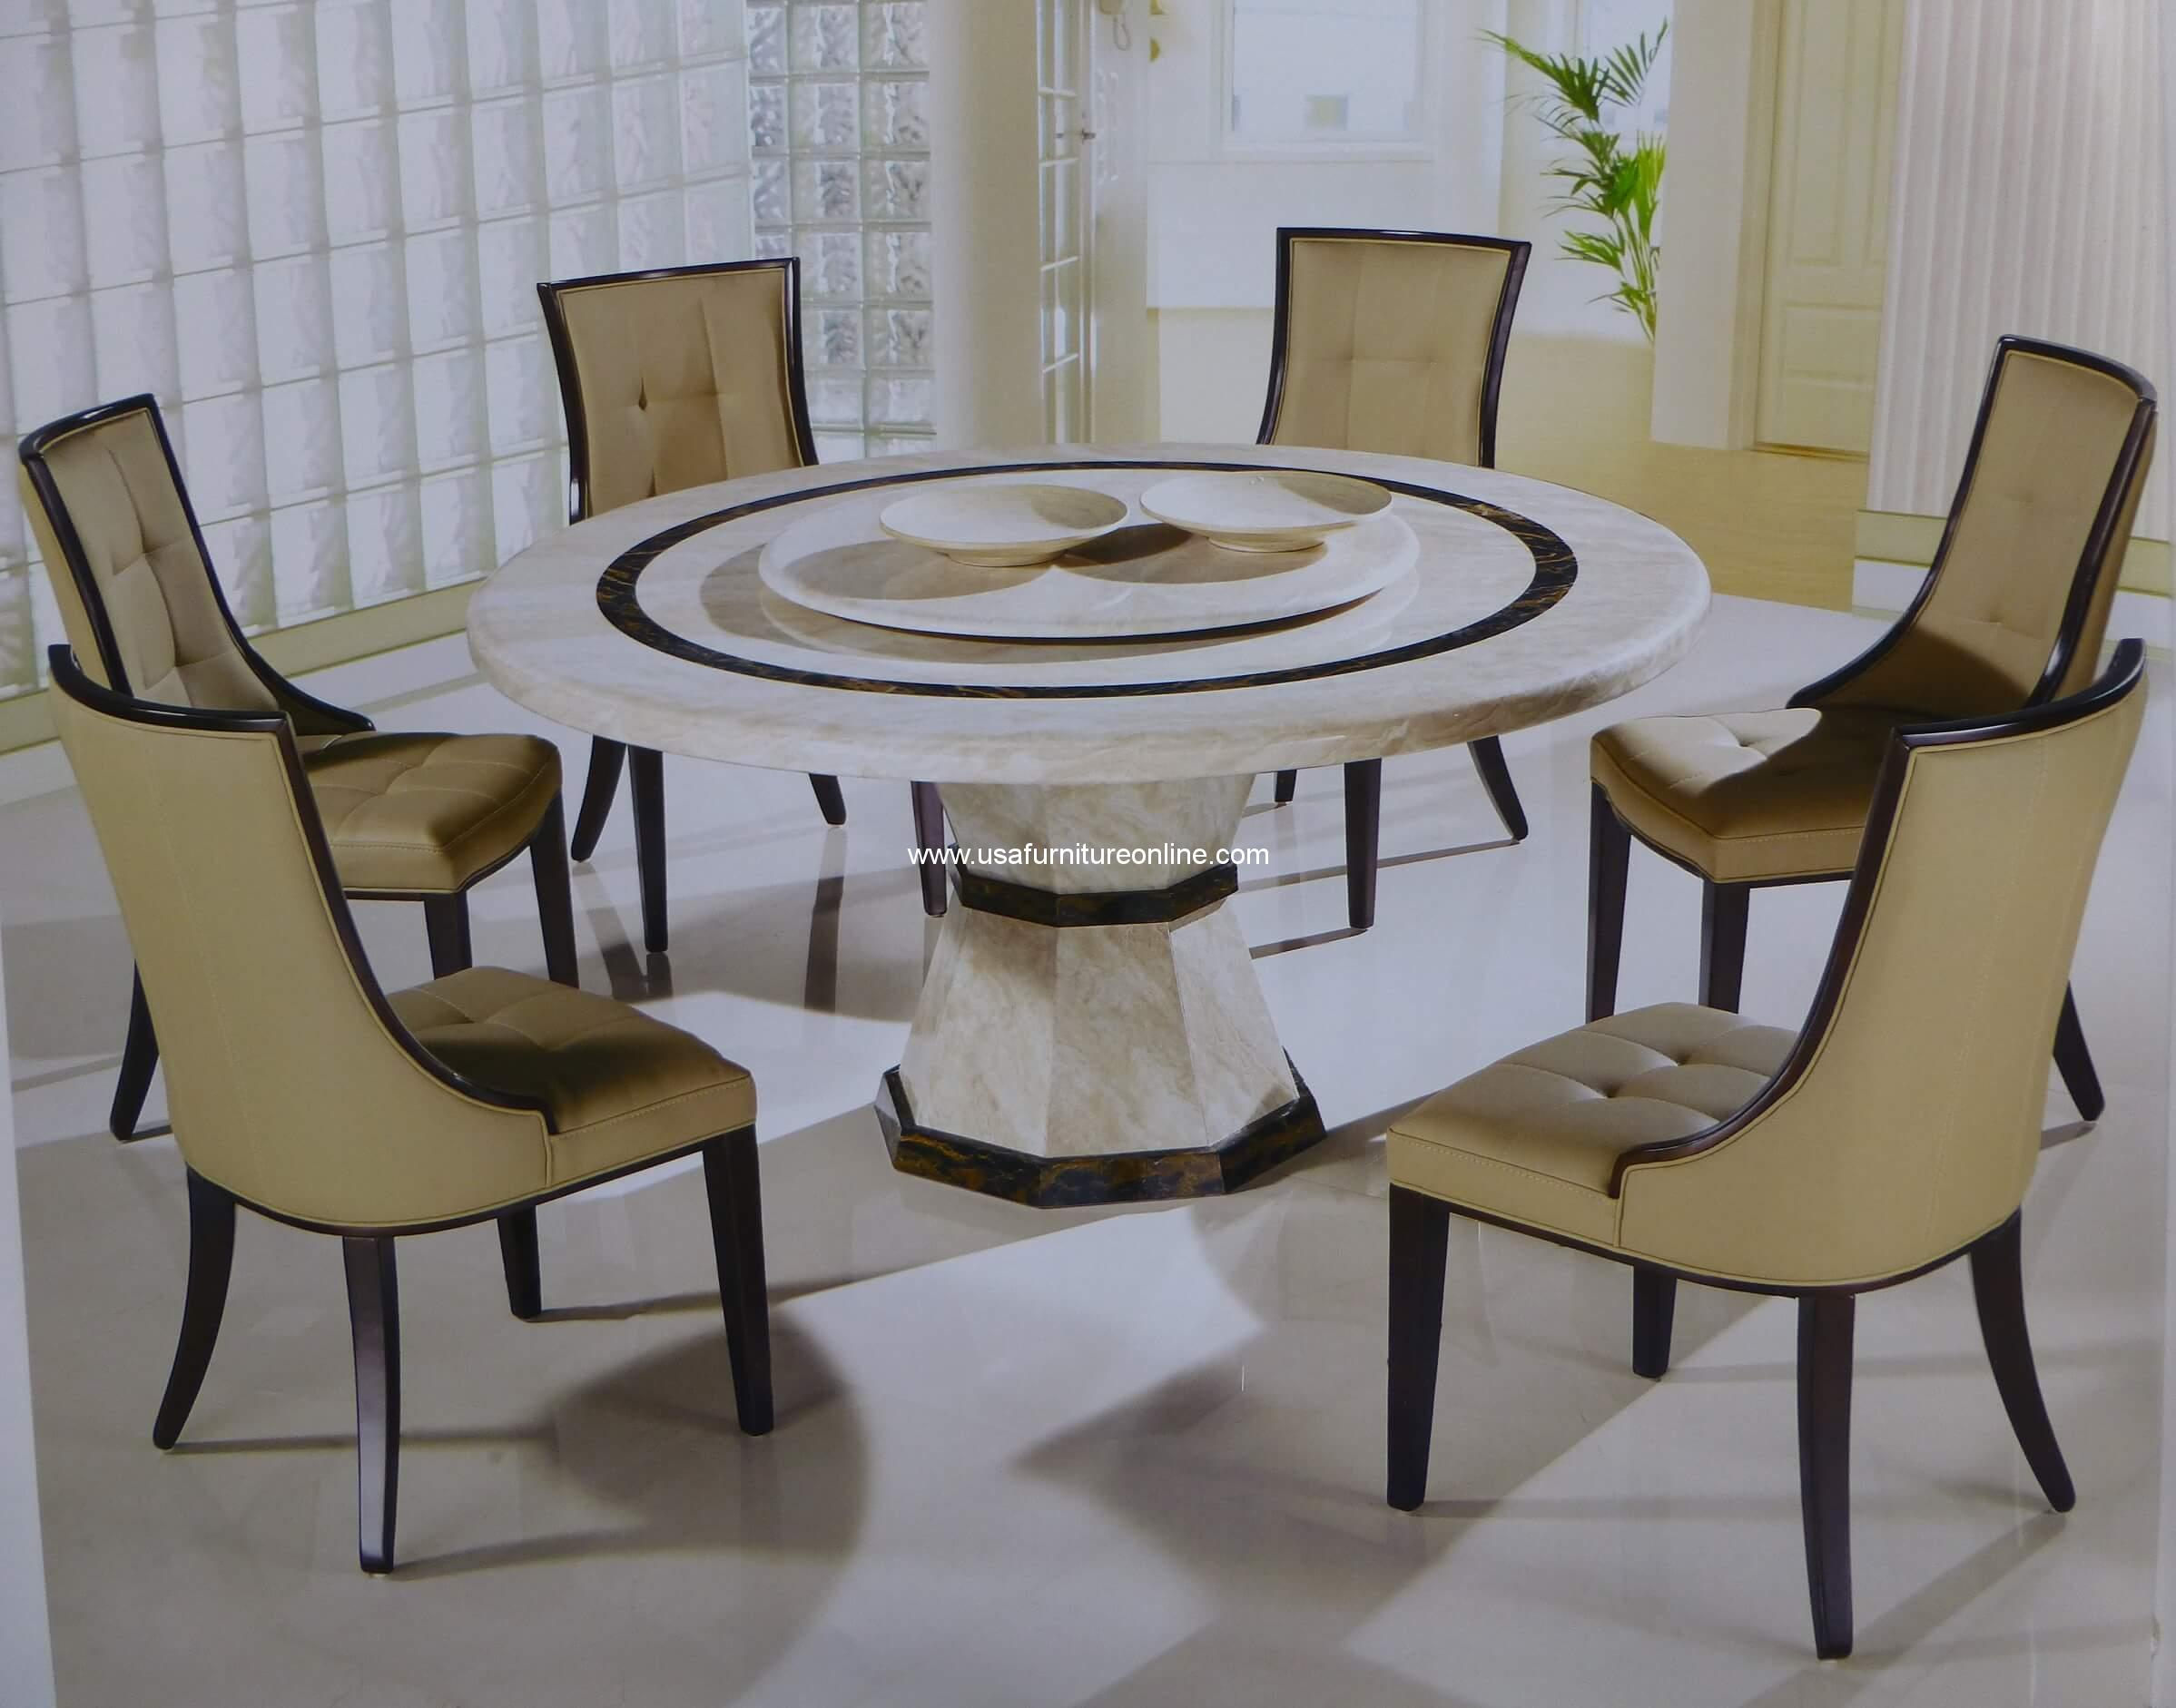 Furniture Stores Canberra Canberra Italian Marble 7 Piece Round Dining Set